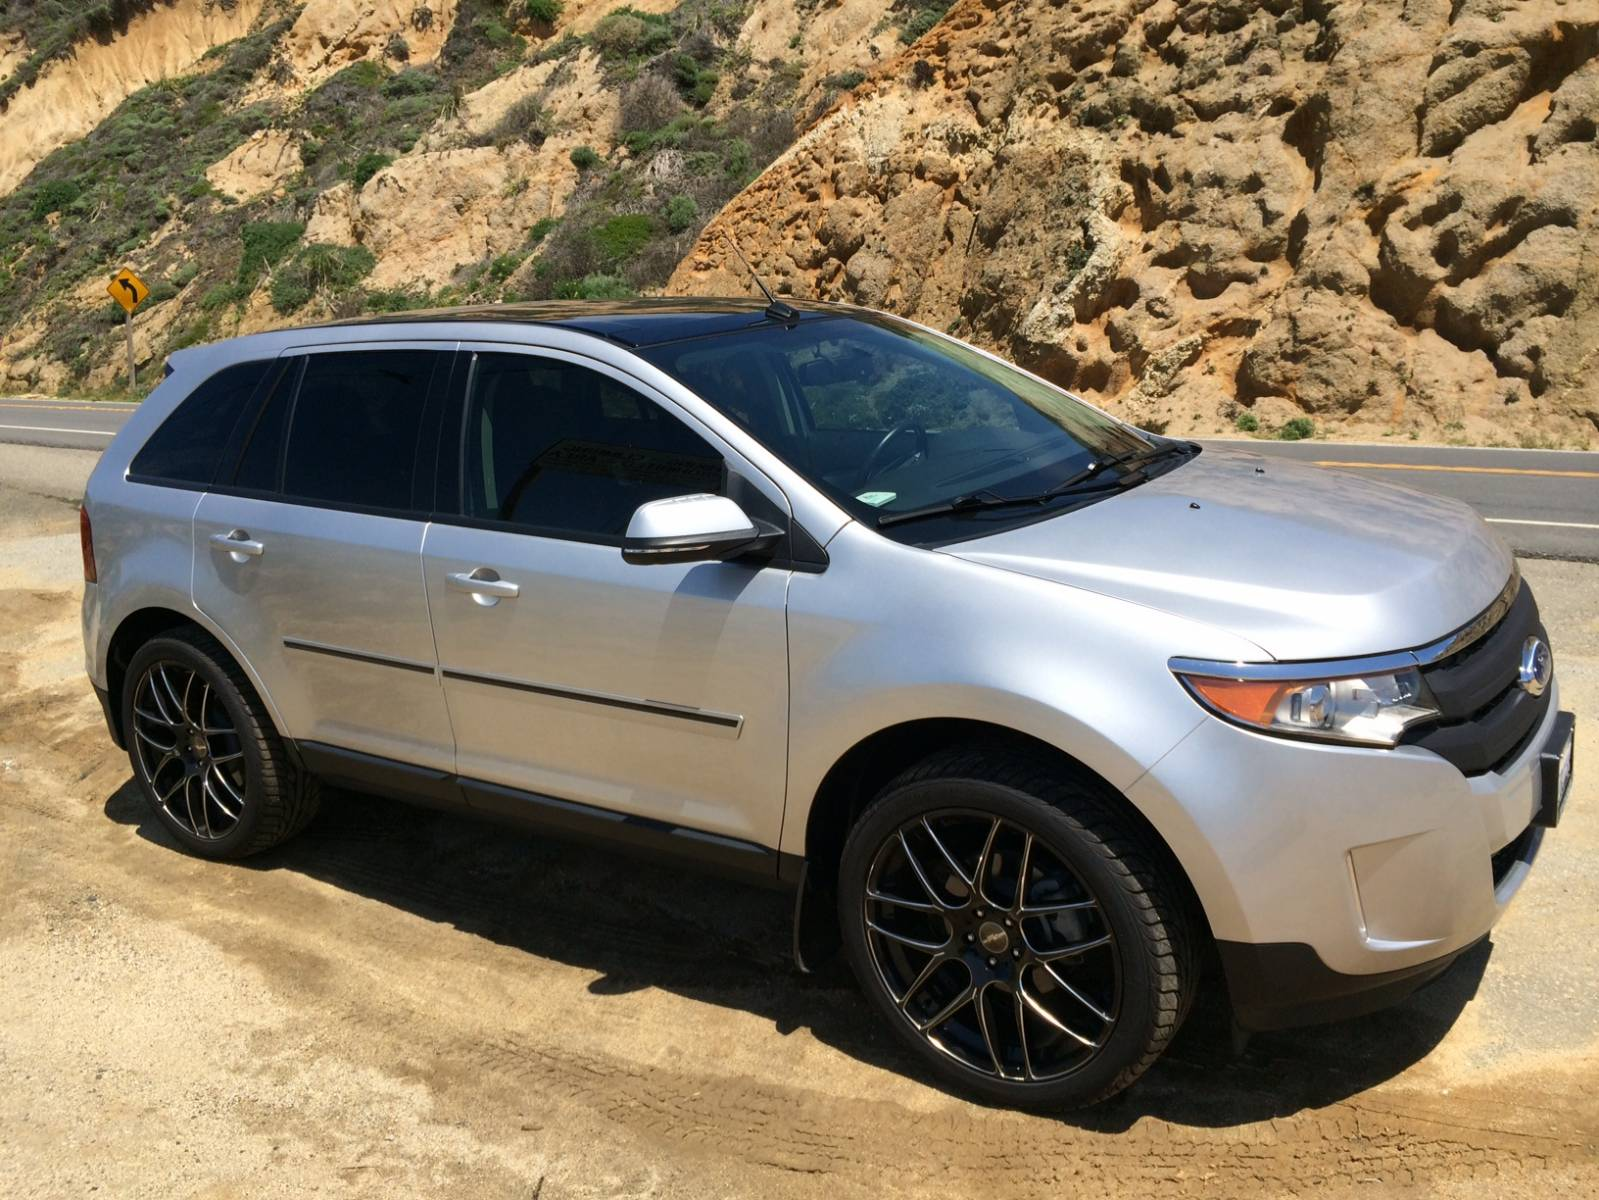 Ford Edge Mud Tires Ford Edge  Member Photo Albums Ford Edge Forum